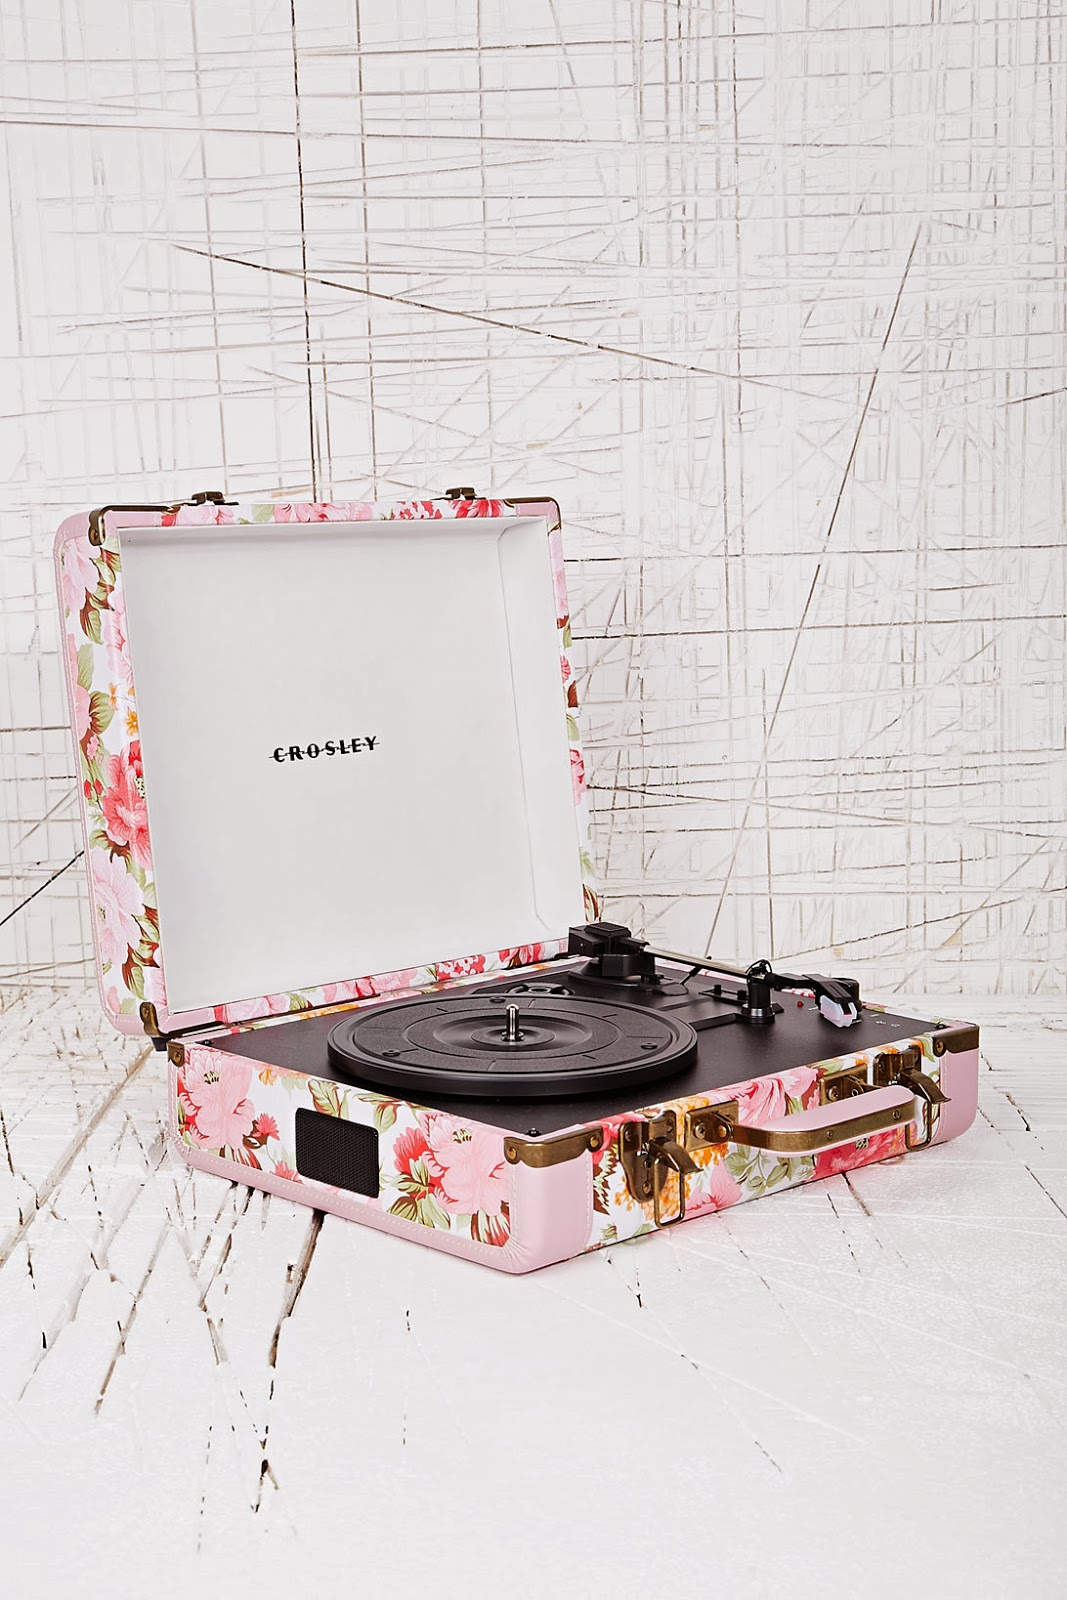 Still Is This Crosley Pink Floral Mini Turntable. Itu0027s £150 And Ever So  Gorgeous. I Love The Pattern, And The Colour, But I Do Wish That The Floral  Design ...